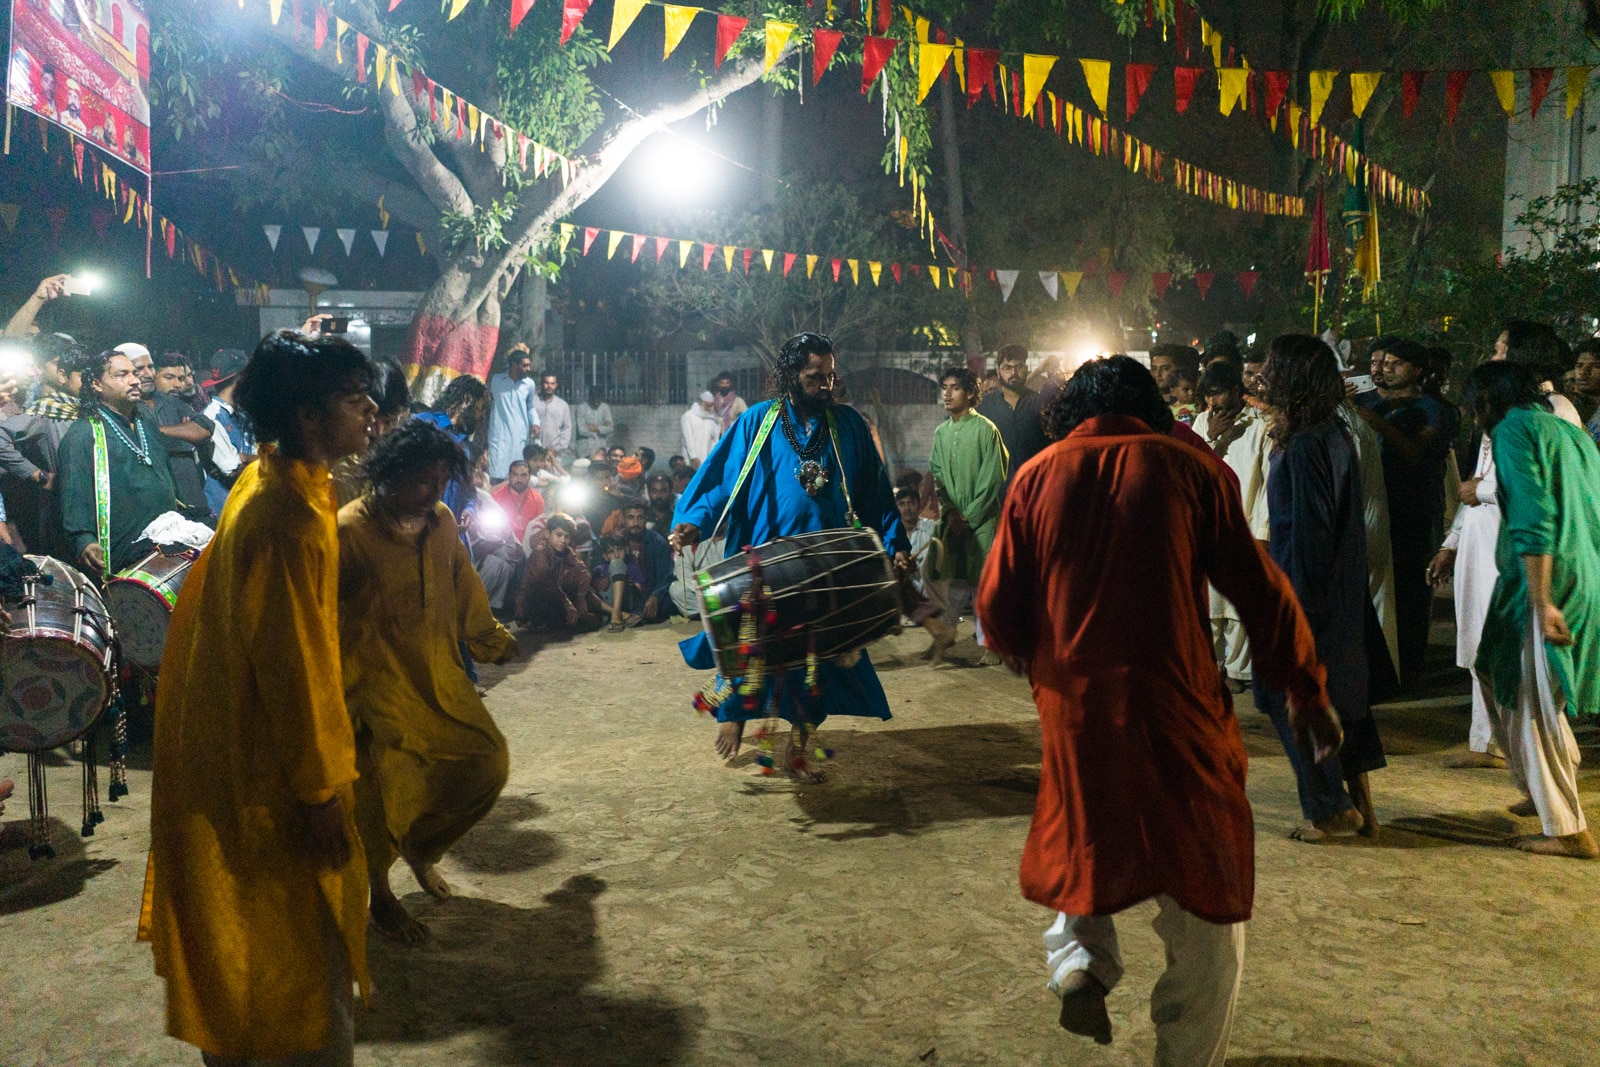 Sufi dhamal in Lahore - Dance and dhol drums at Madhu Lal Hussain shrine in Lahore on Thursday night - Lost With Purpose travel blog